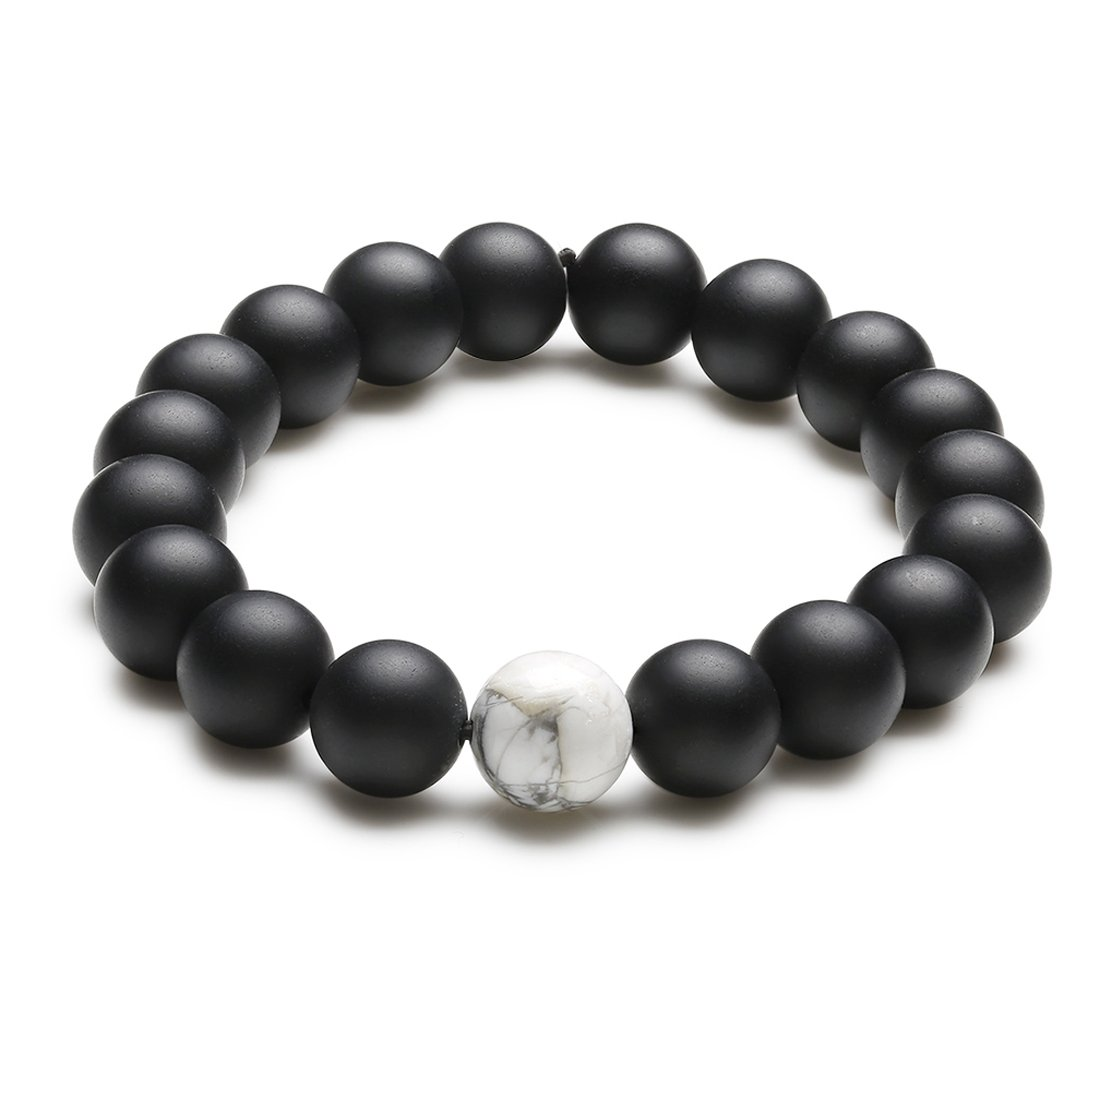 Distance Couple Bracelet Relationship Black Matte Agate and White Howlite Stone His and Hers Beads 2Pcs Candyfancy B017-18